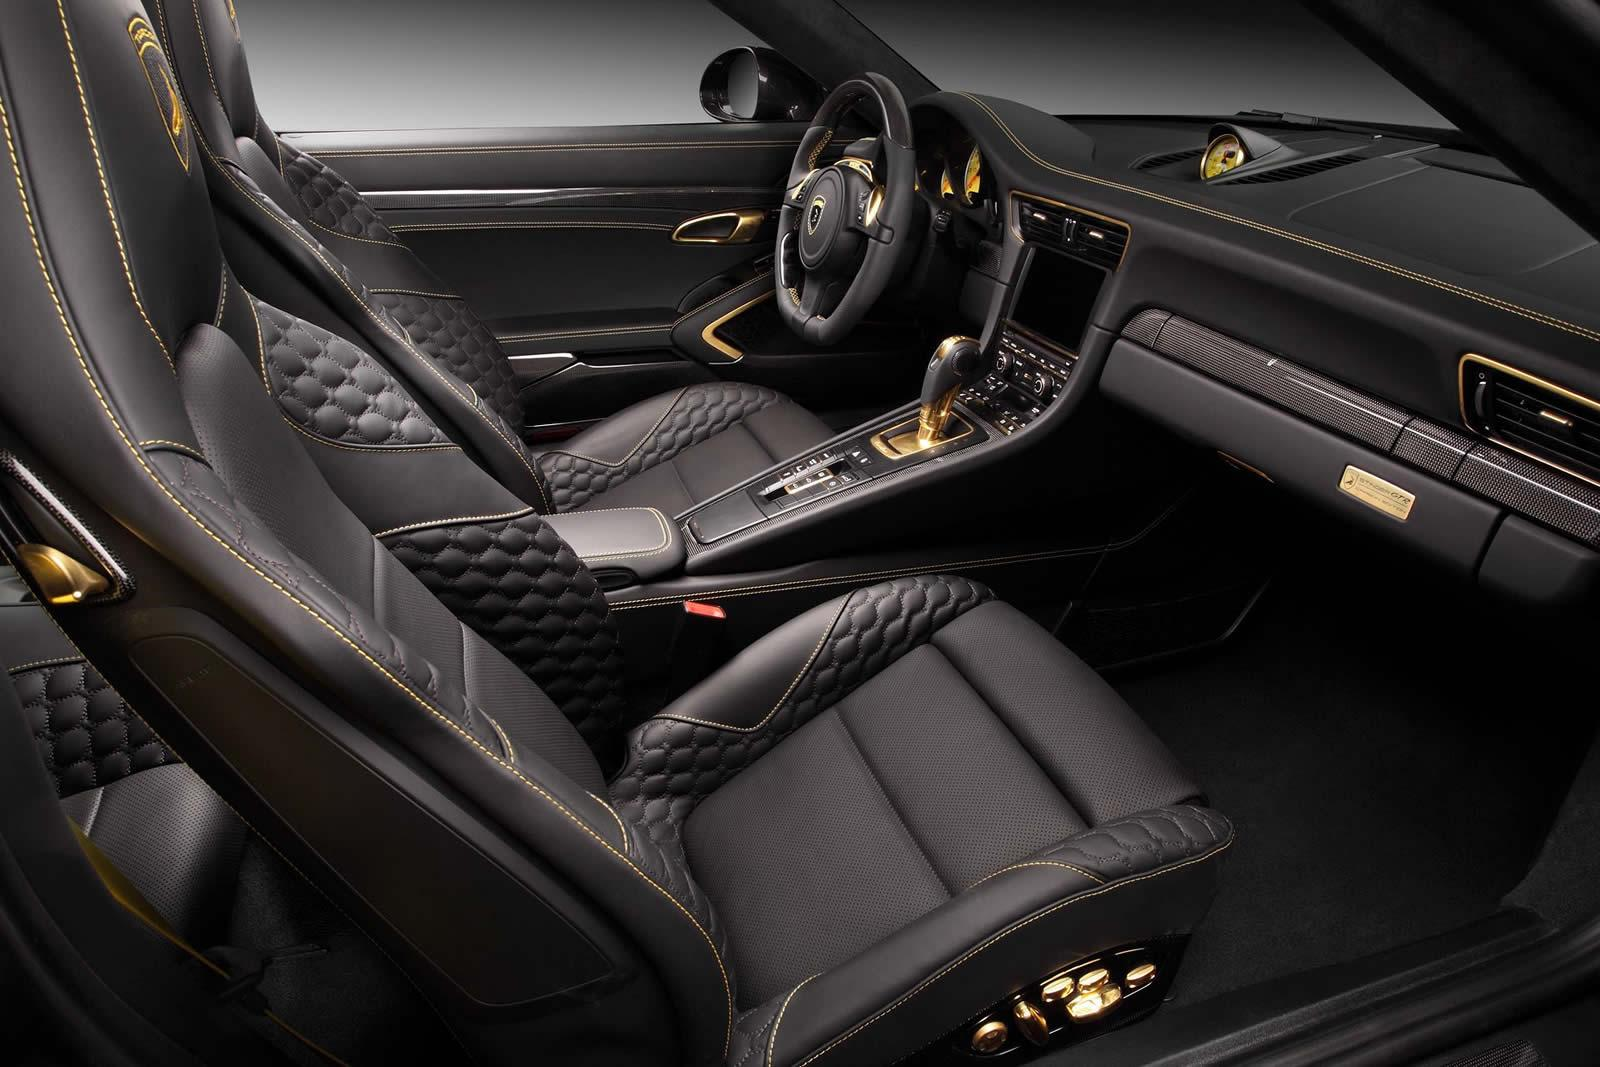 2015 porsche 911 turbo s stinger gtr carbon edition by topcar interior photo seats size 1600. Black Bedroom Furniture Sets. Home Design Ideas